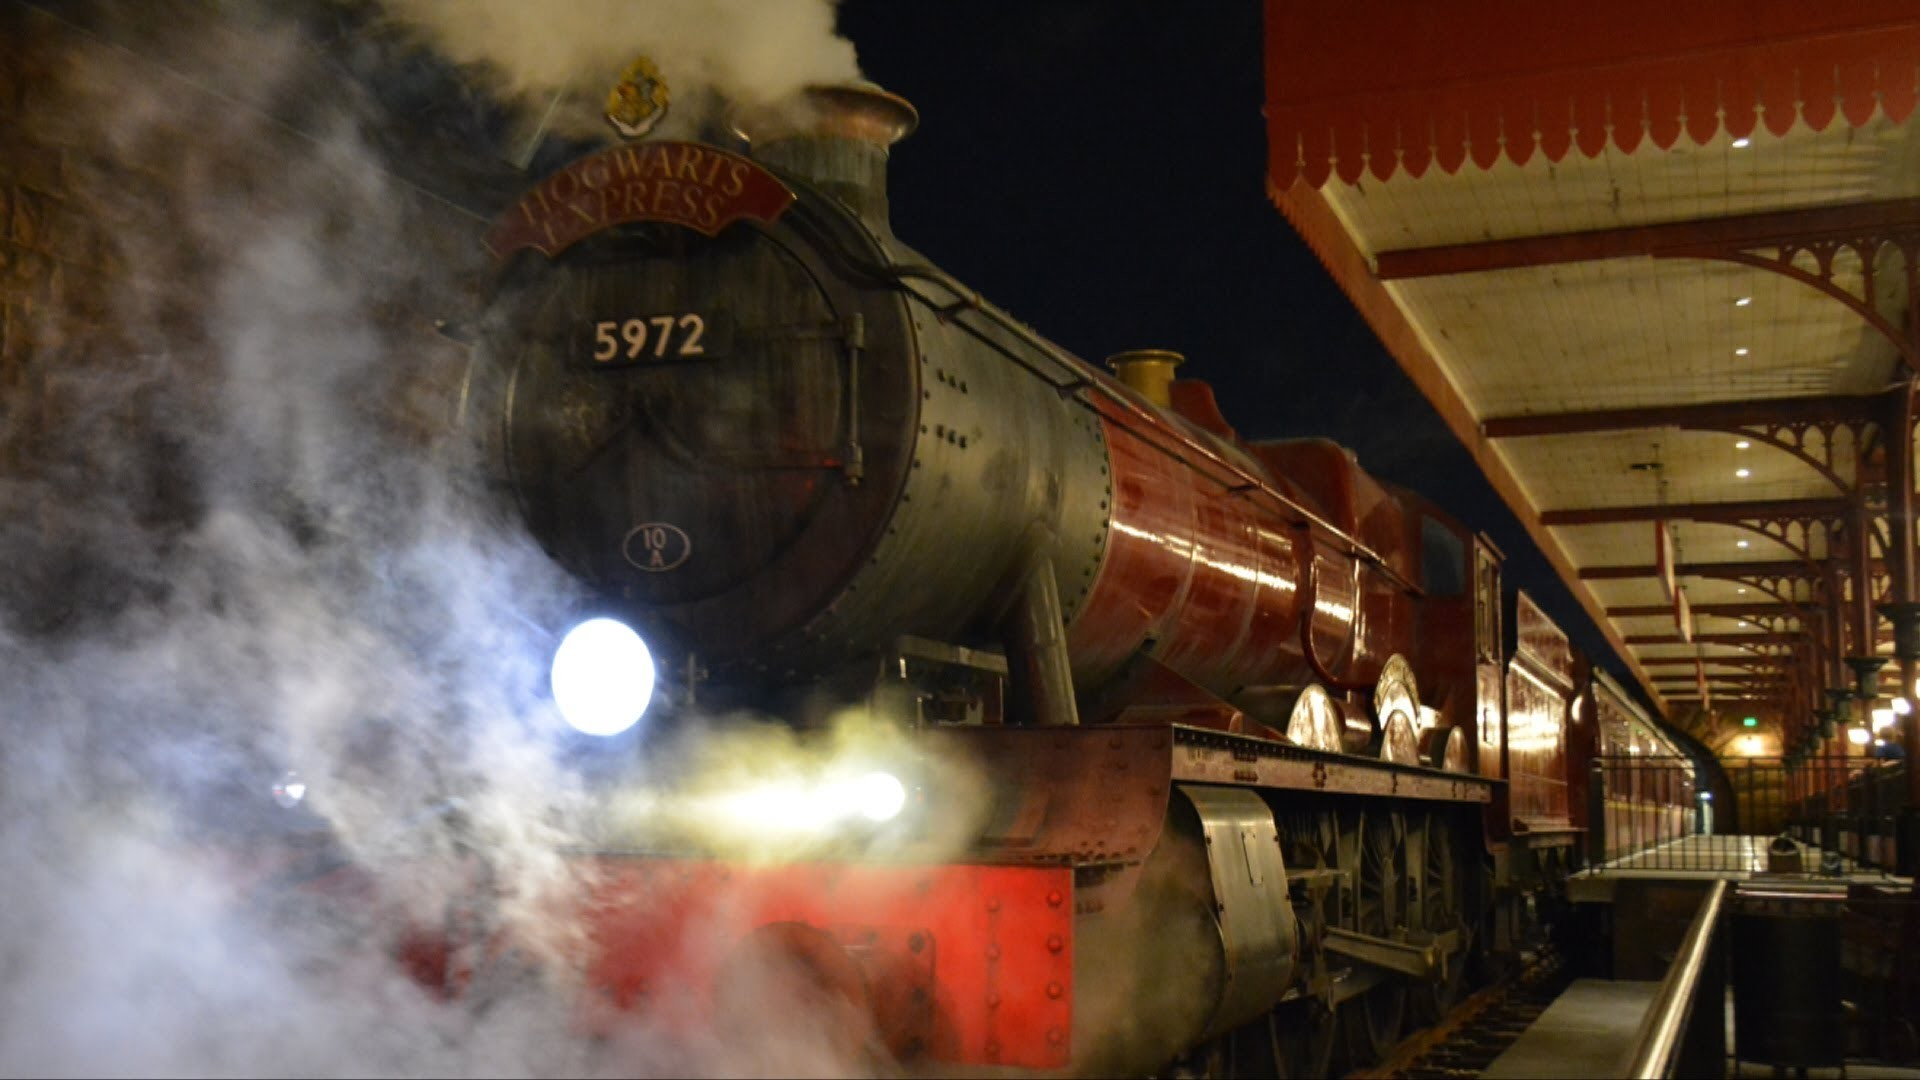 Res: 1920x1080, Hogwarts Express from King's Cross Station to Hogsmeade Spoiler Free Tour  including Platform 9 ¾